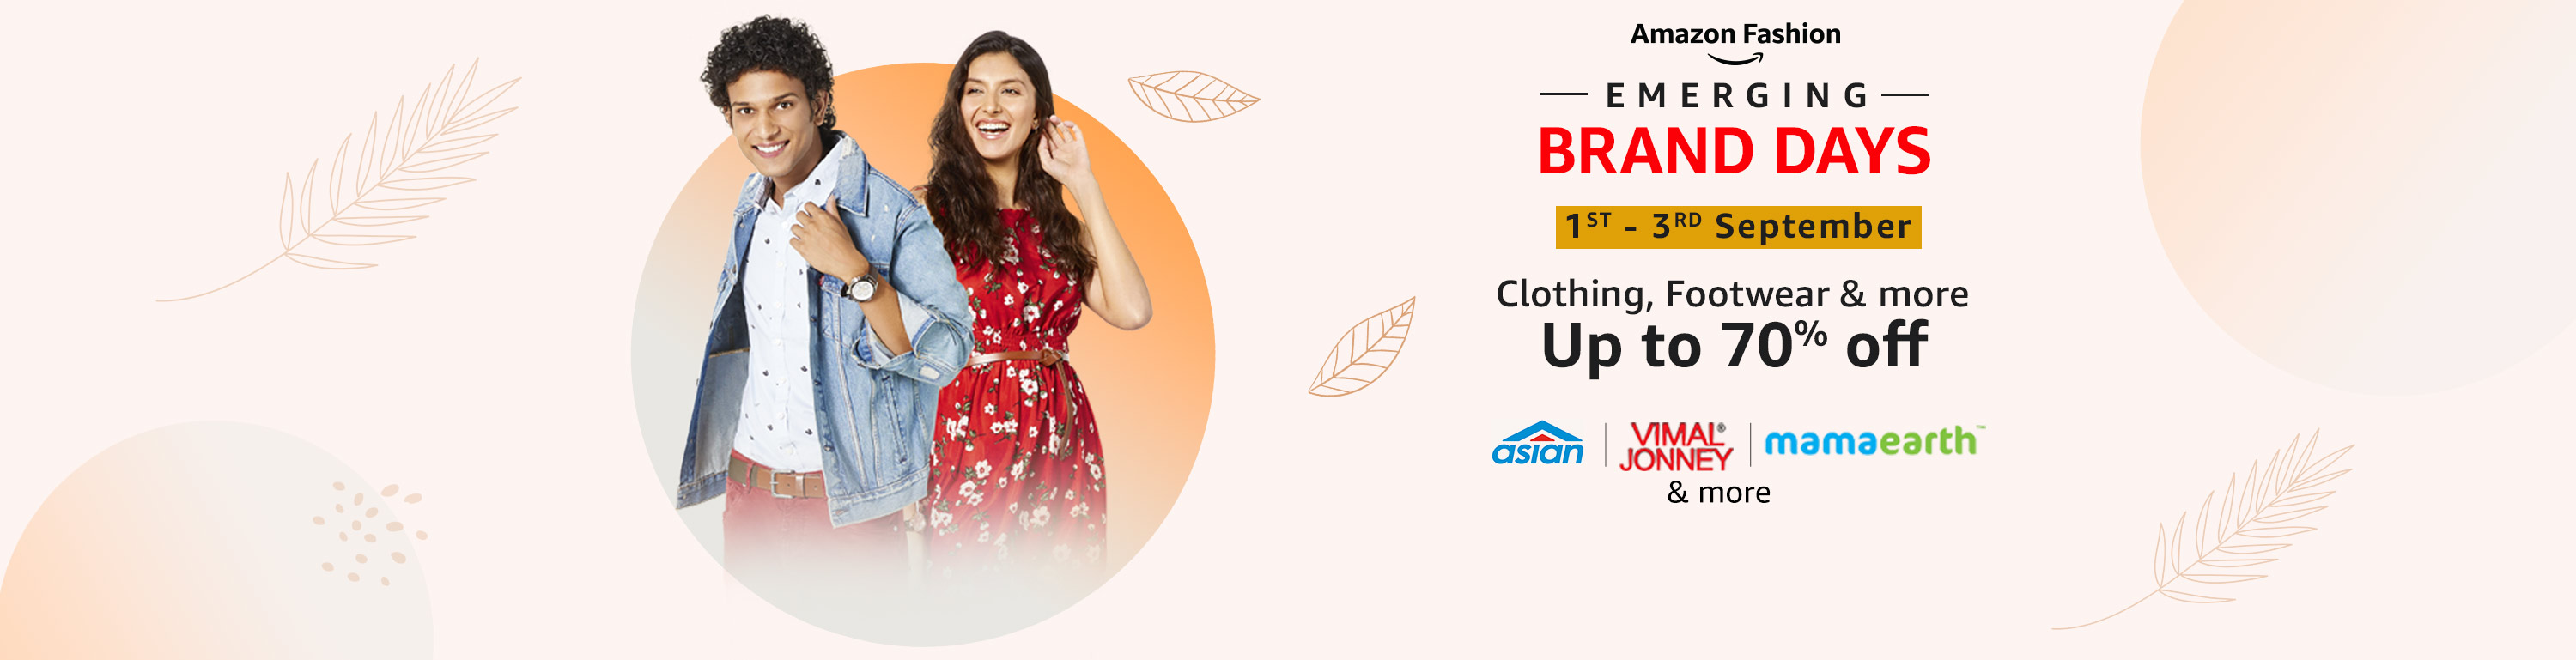 Emerging Brand Days - Up to 70% Offer on Clothing, Footwear & more